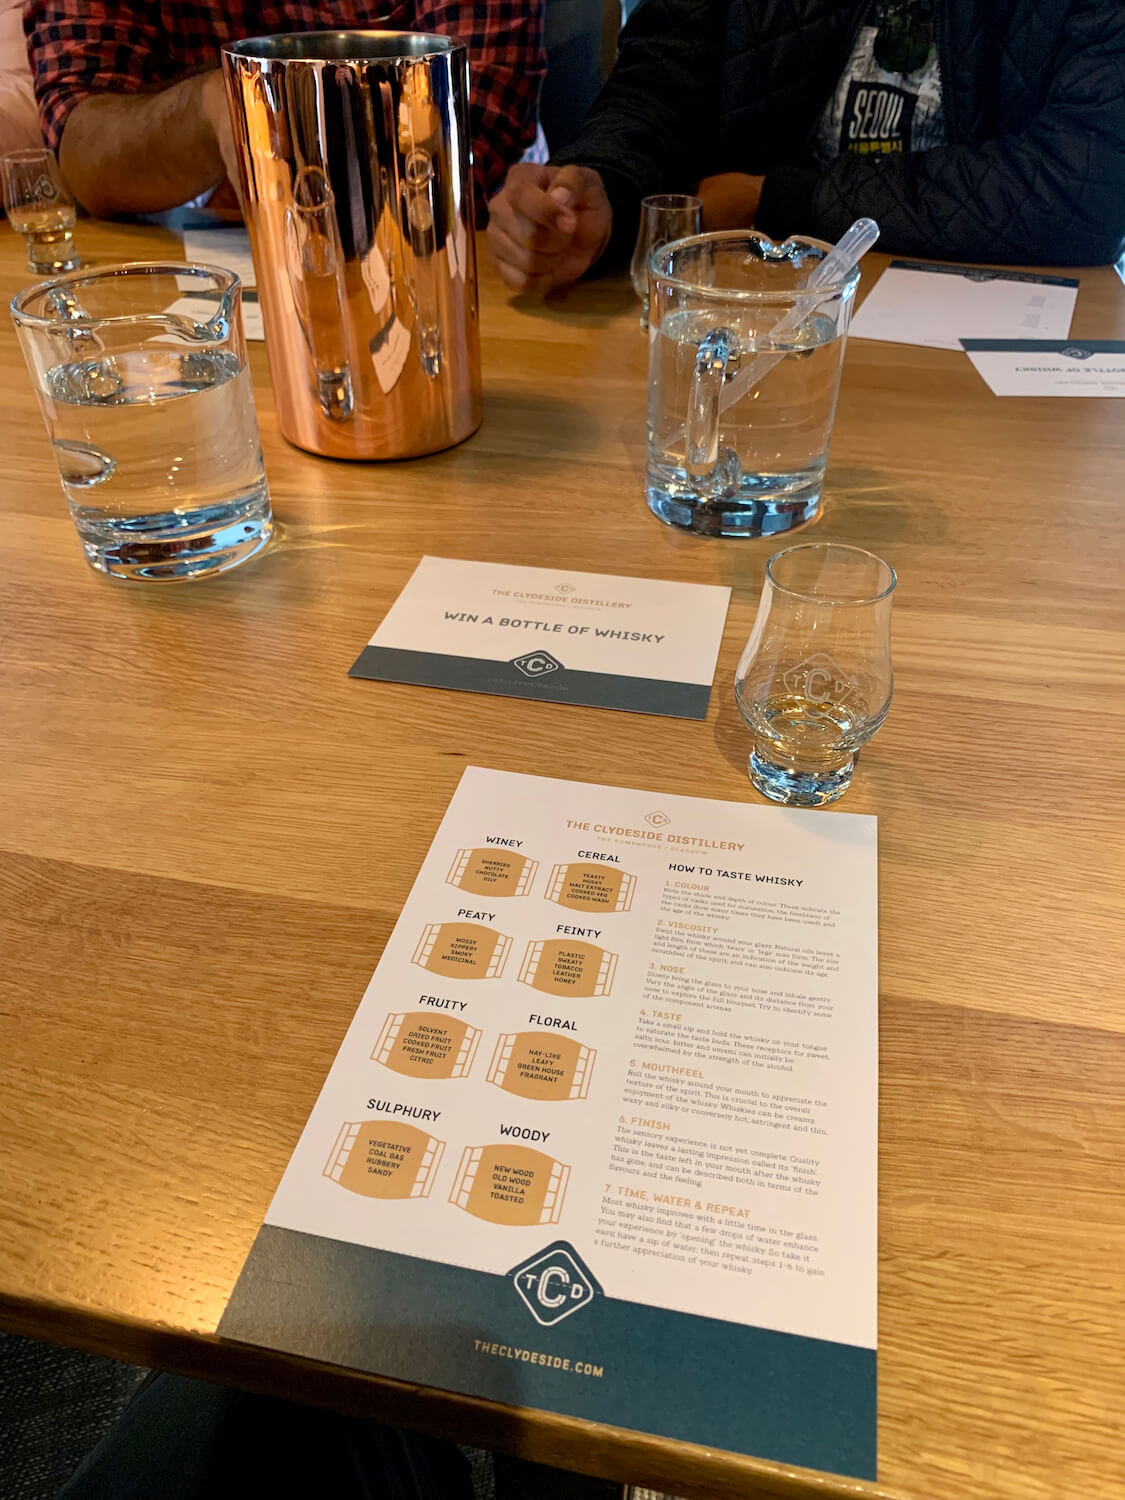 The Clydeside Distillery - Whisky Tasting Glass and Guide